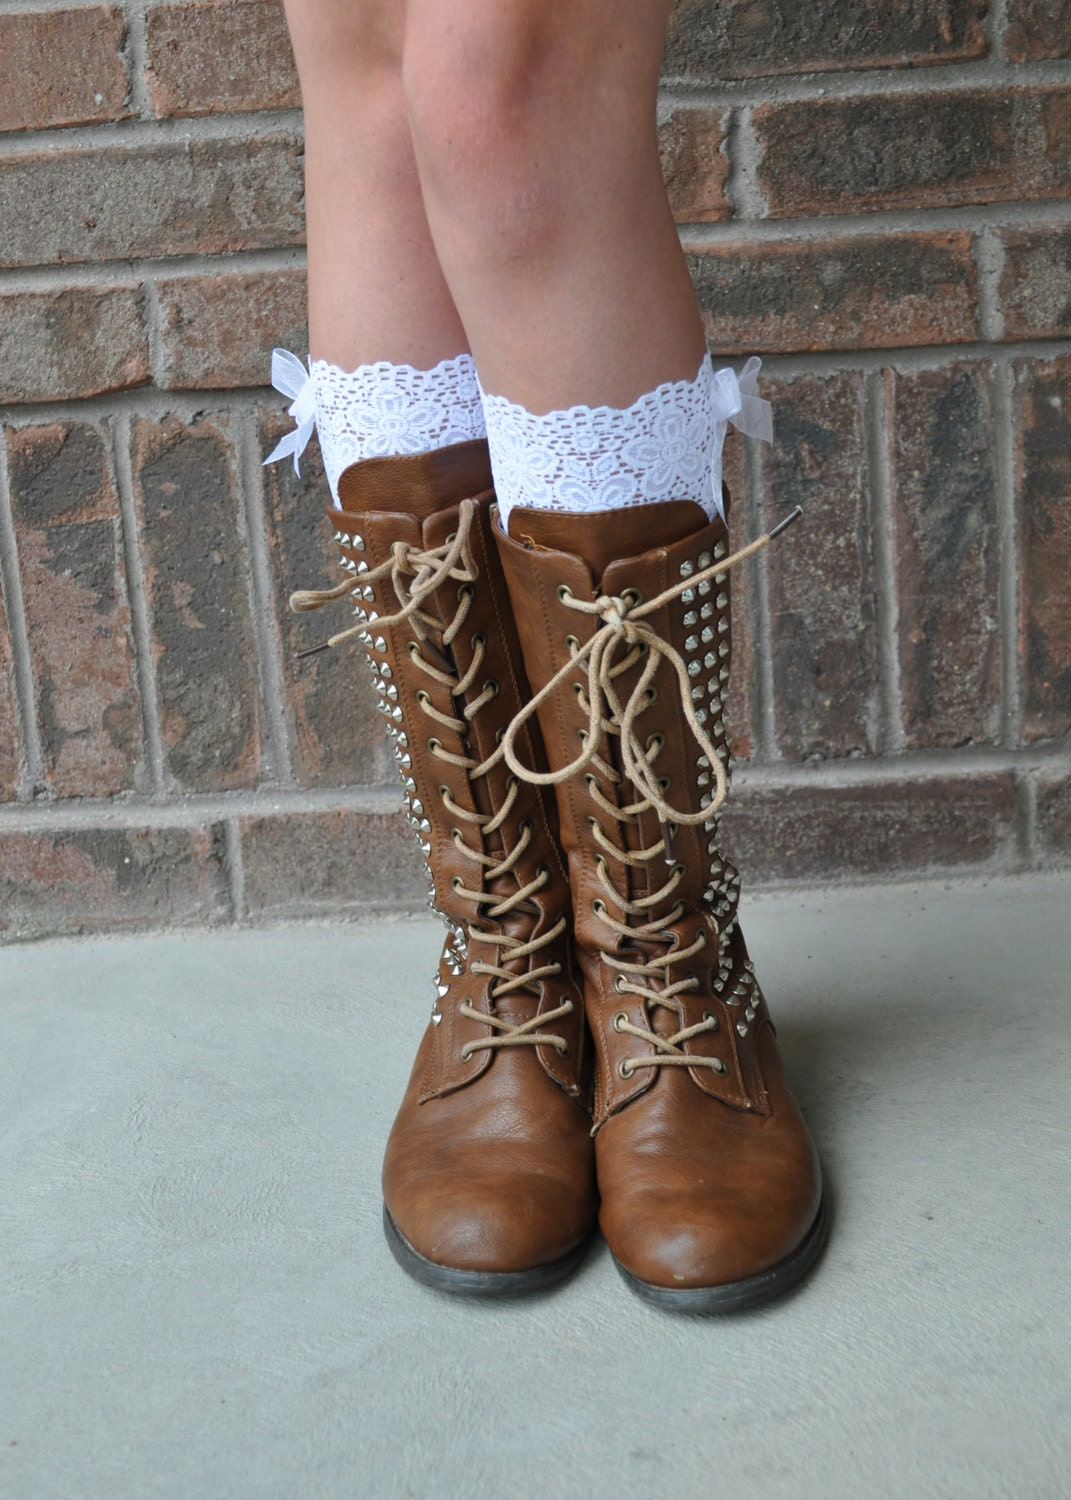 Lace Boot Cuffs Faux Lace Boot Socks Faux Lace Leg Warmers